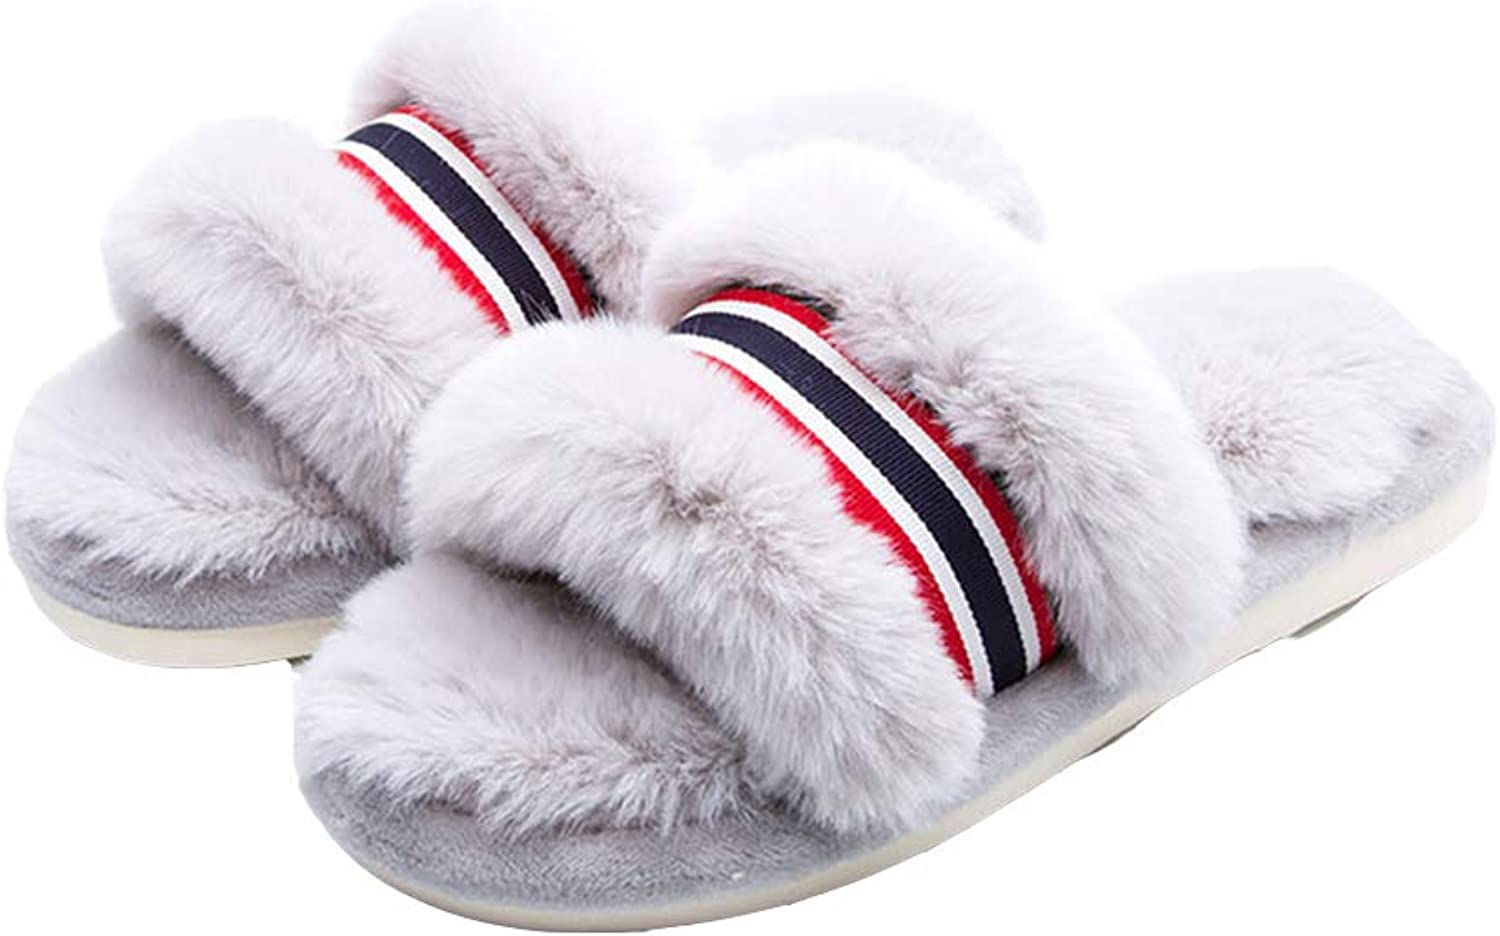 T-JULY Women's Striped Fluffy Fur Slippers shoes Fashion Suede Winter Plush Warm Flats Slides Rabbit Hair Sandals